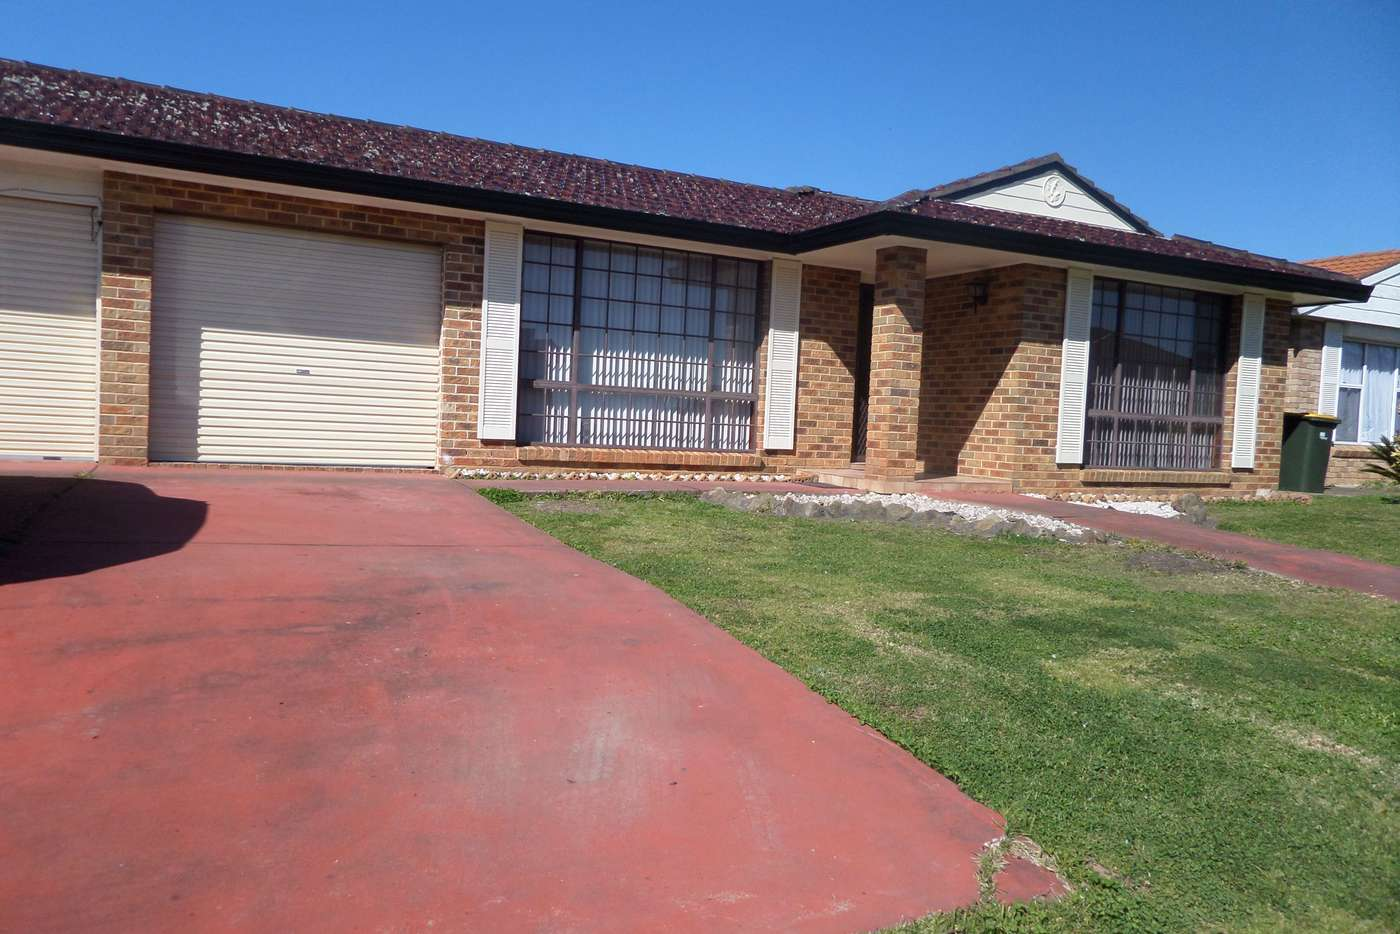 Main view of Homely house listing, 243 Wilson Road, Green Valley NSW 2168